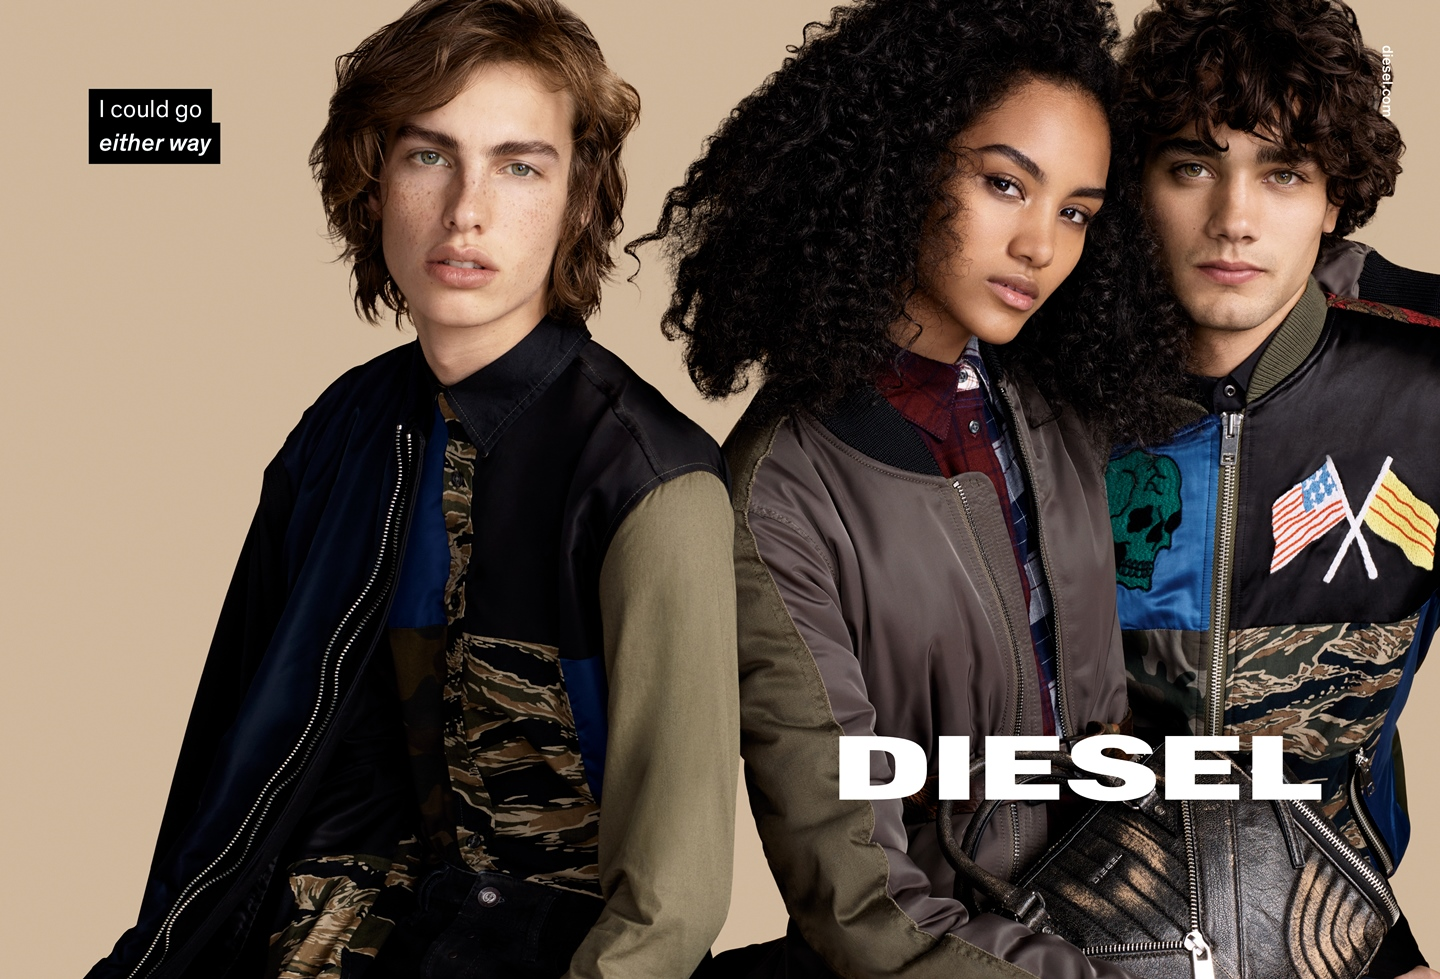 289209_623212_diesel_campaign_fw16_atl_military_group_dps_highres